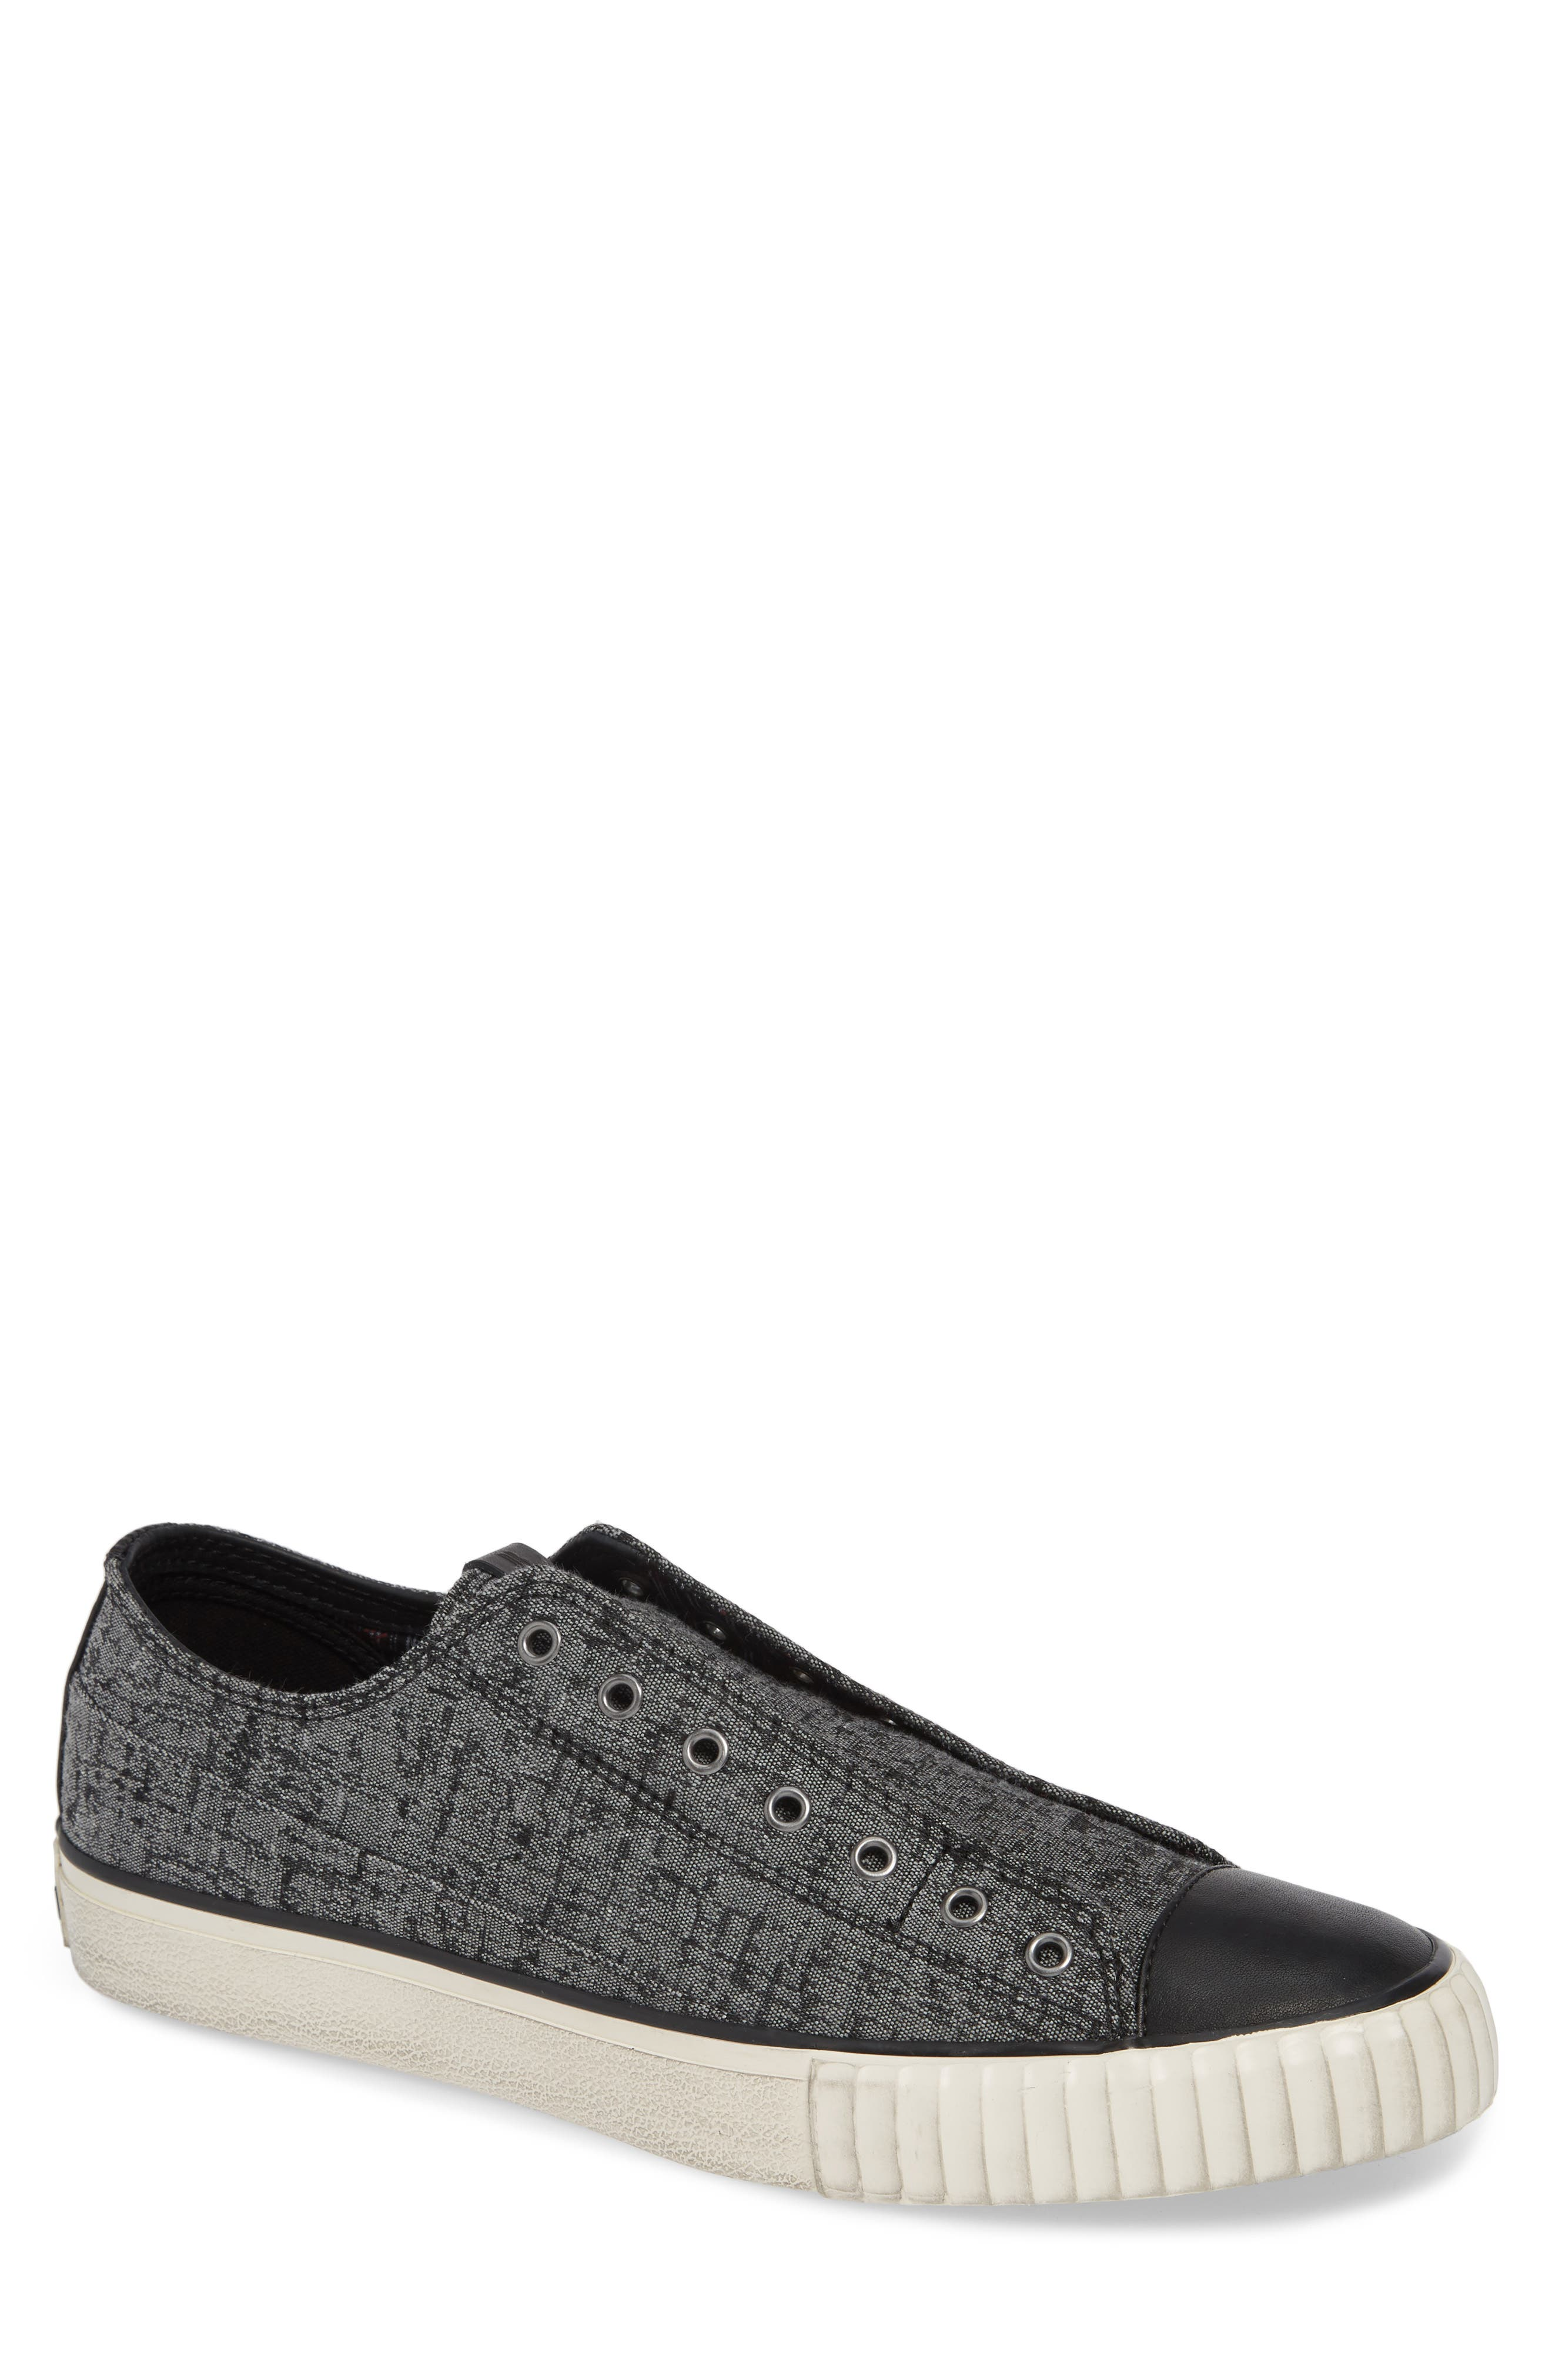 BOOTLEG BY JOHN VARVATOS, John Varvatos Star USA Bootleg Laceless Sneaker, Main thumbnail 1, color, STONE GREY CANVAS